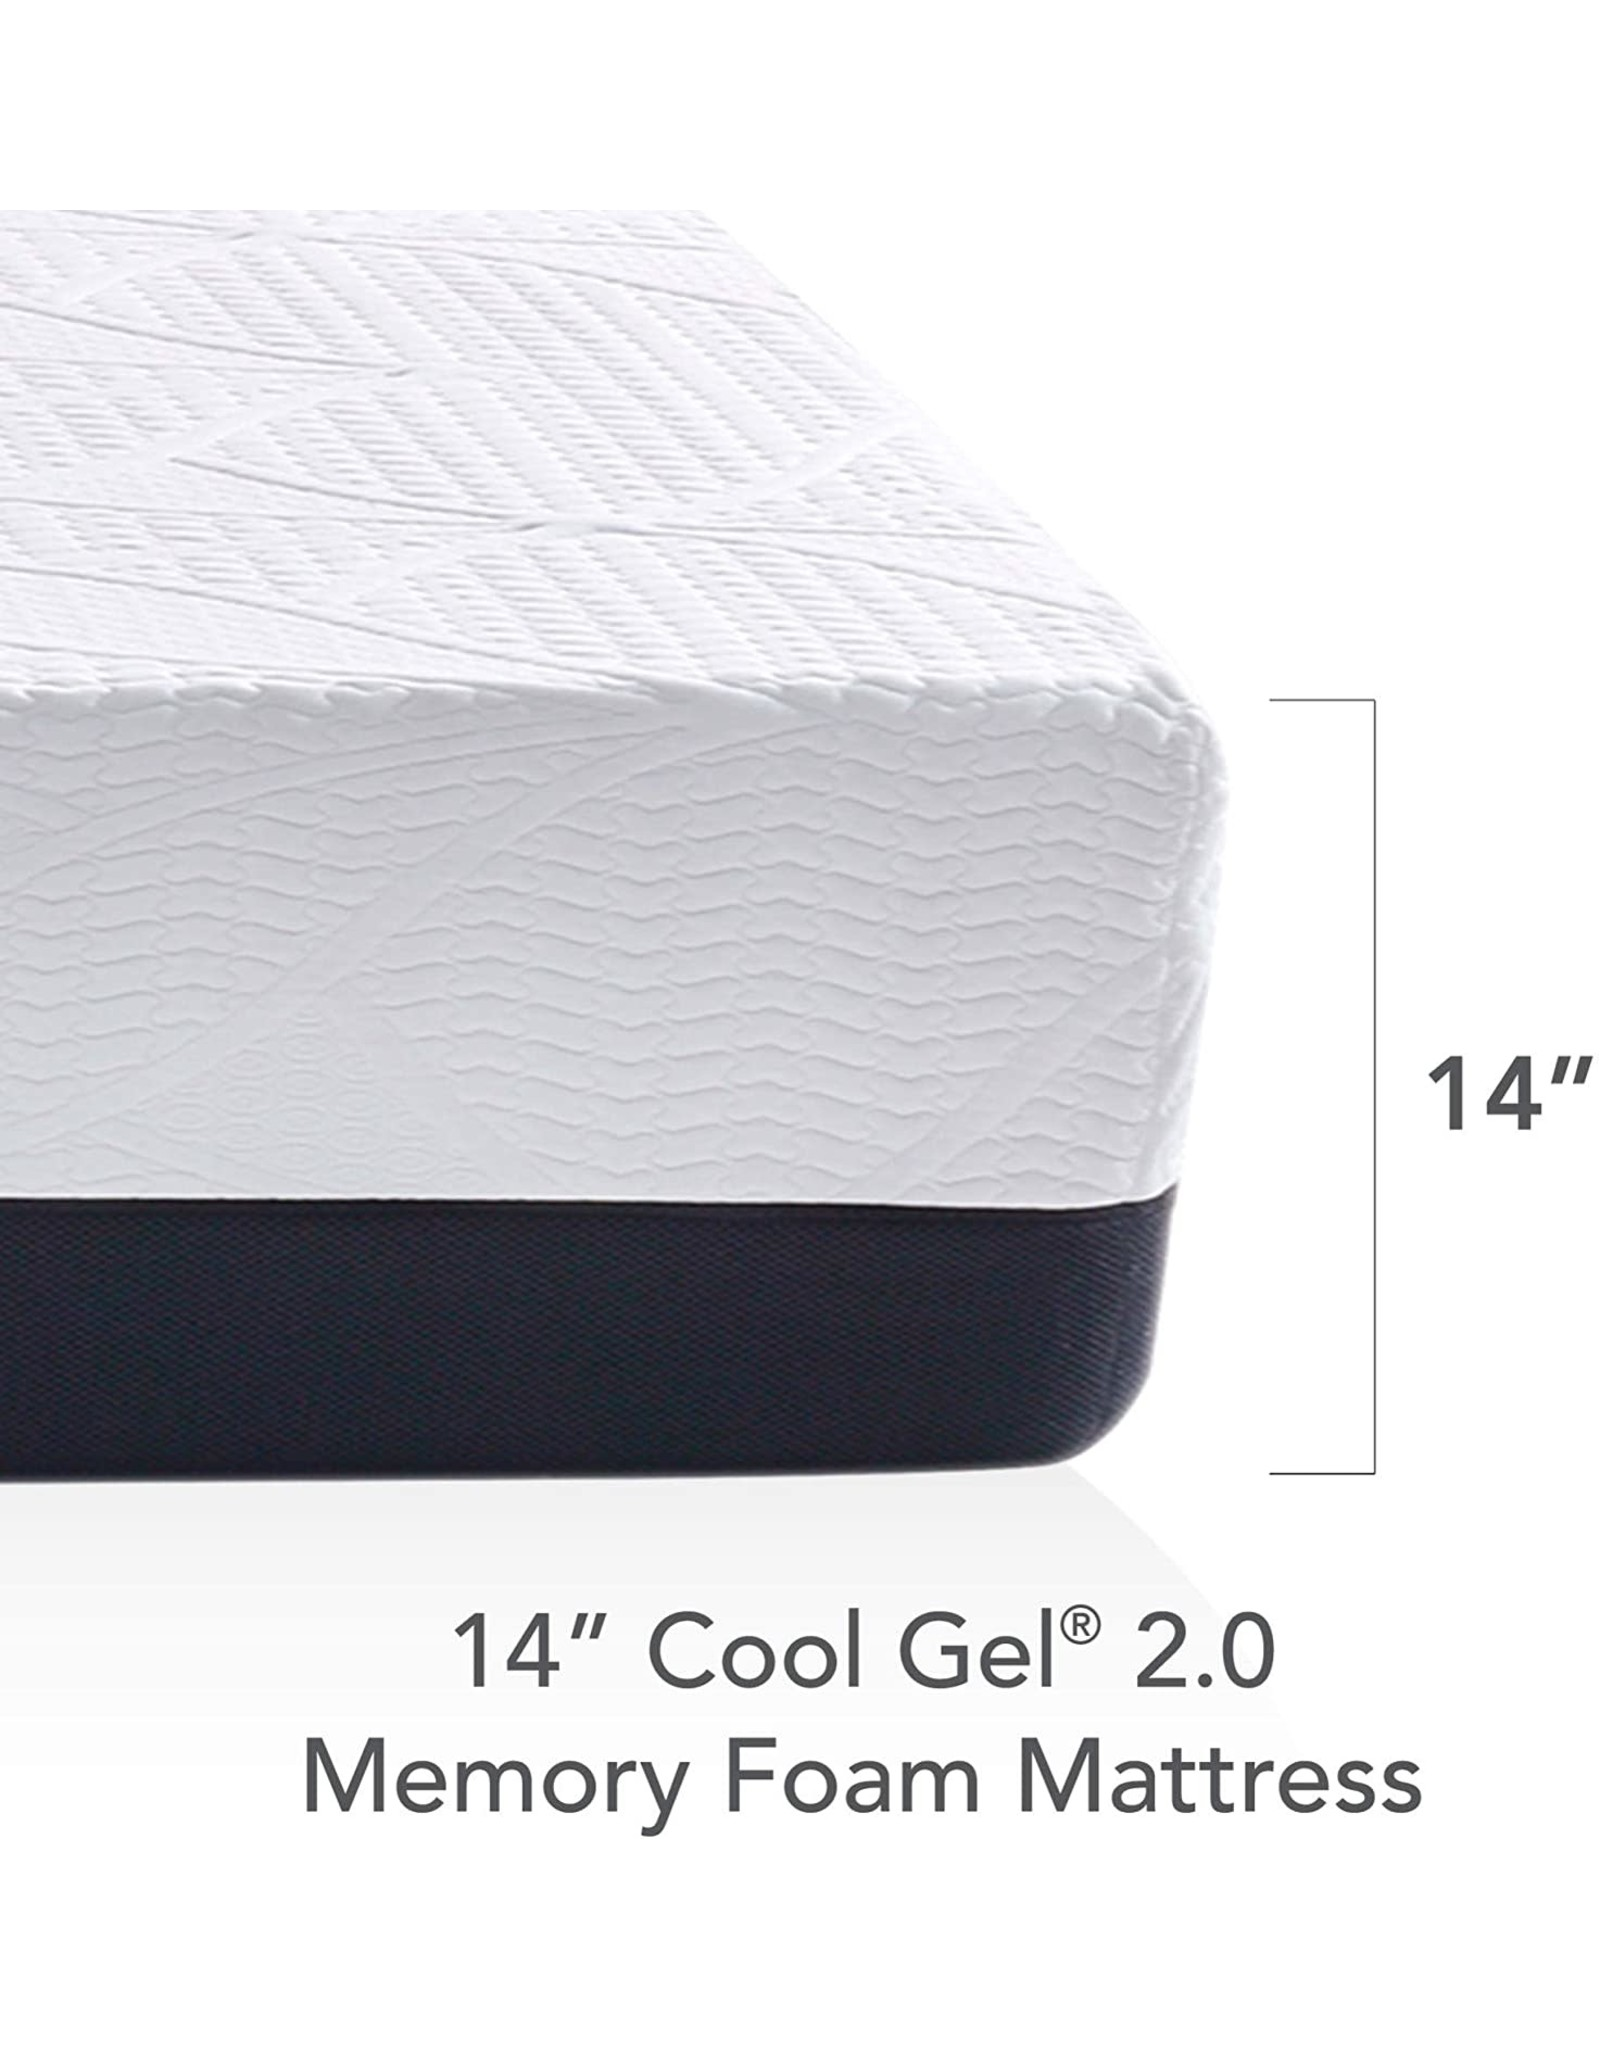 Classic Brands Classic Brands Cool Gel Chill Memory Foam 14-Inch Mattress with 2 BONUS Pillows CertiPUR-US Certified Bed-in-a-Box, Queen